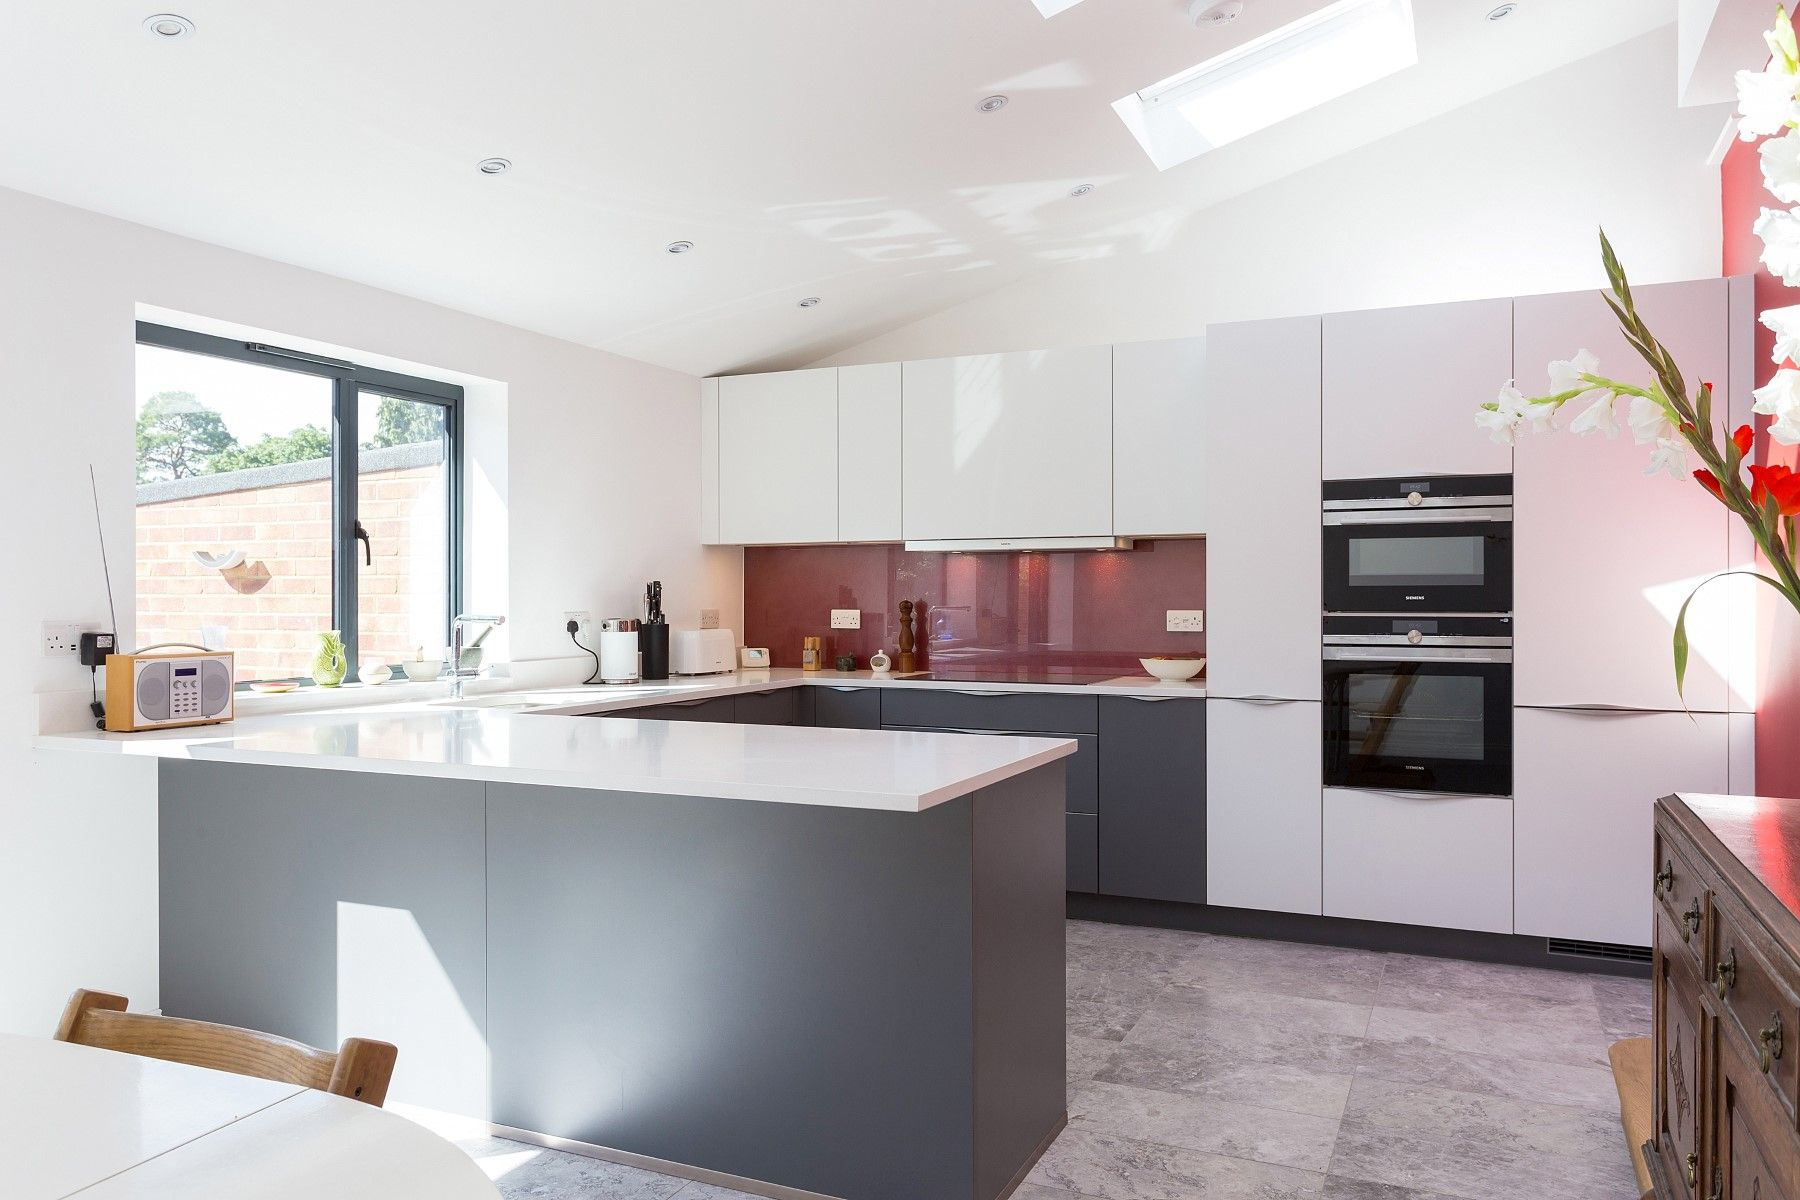 Matt Quartz Grey And White Nolte Kitchen With Top Mounted Handles And Sparkly Red Glass Splash Backs Bespoke Kitchen Design Kitchen Design Kitchen Inspirations